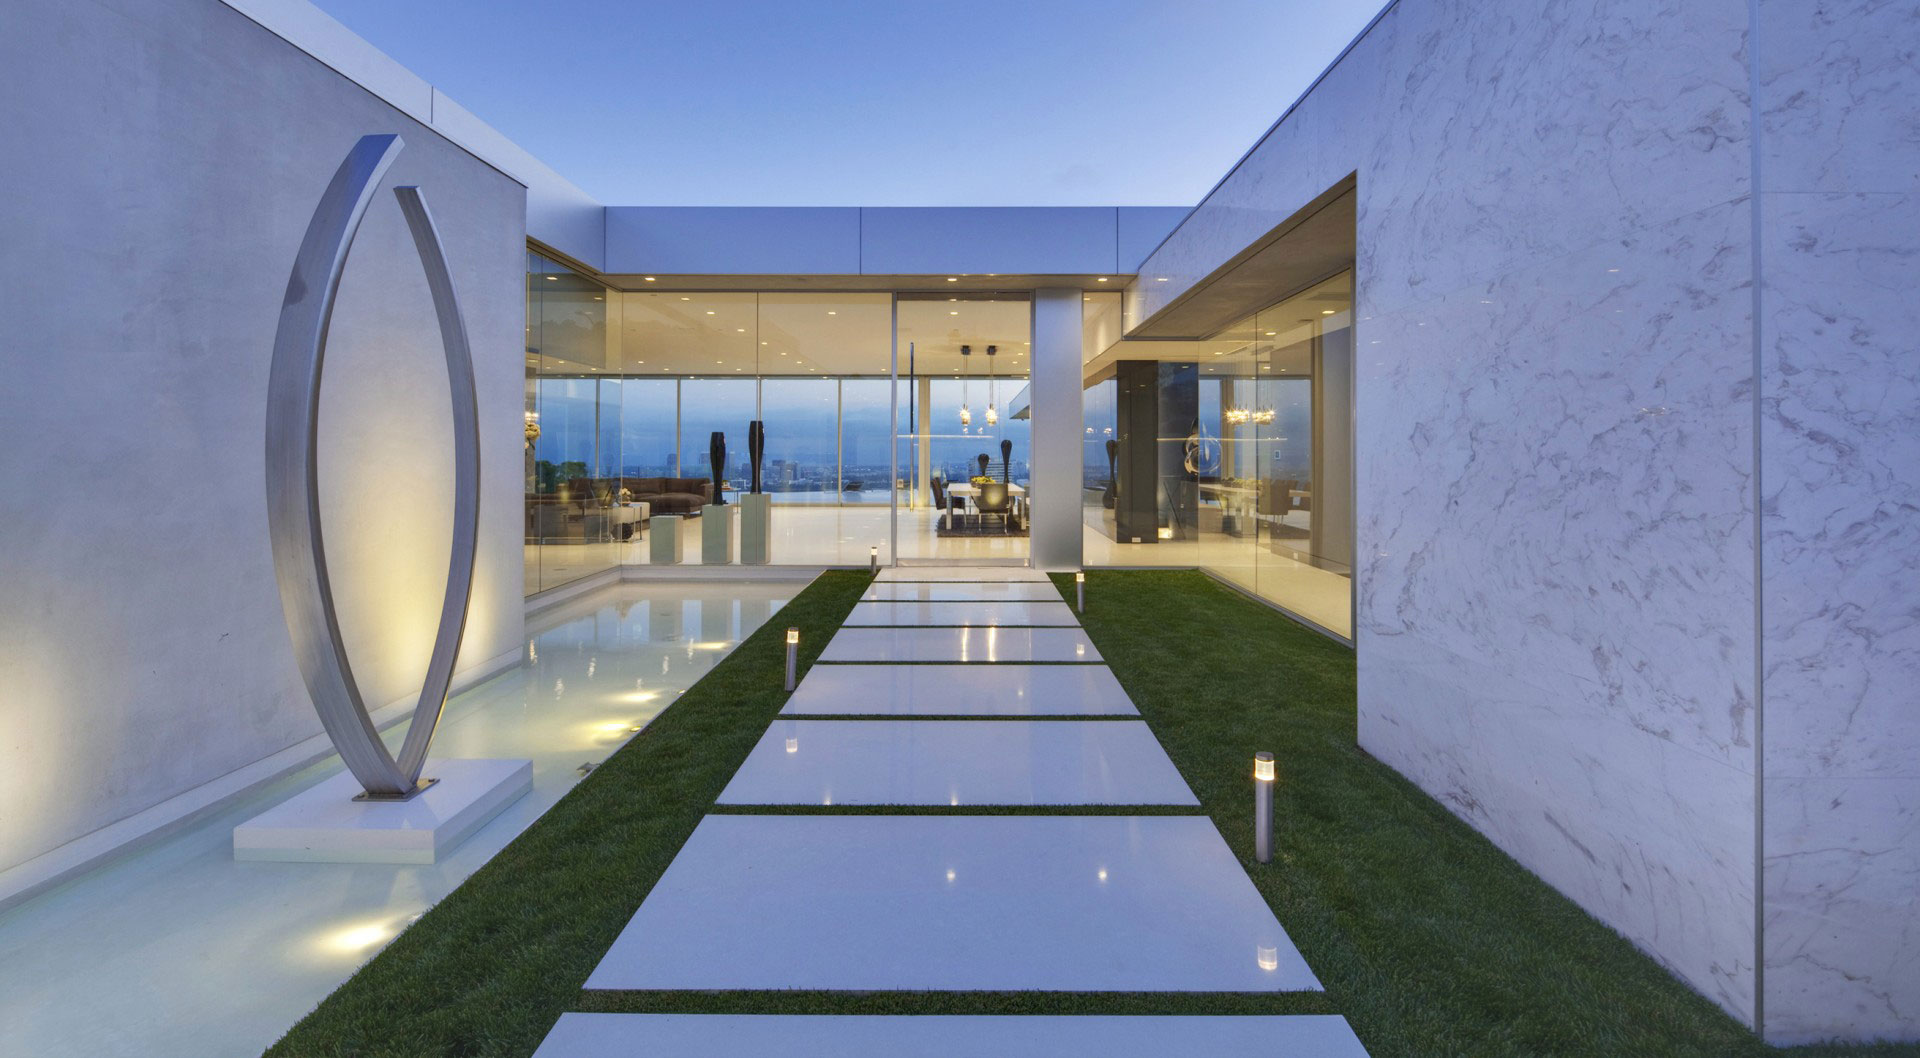 Water Feature, Sculpture, Marble Pathway, Courtyard, Tanager Residence in West Hollywood